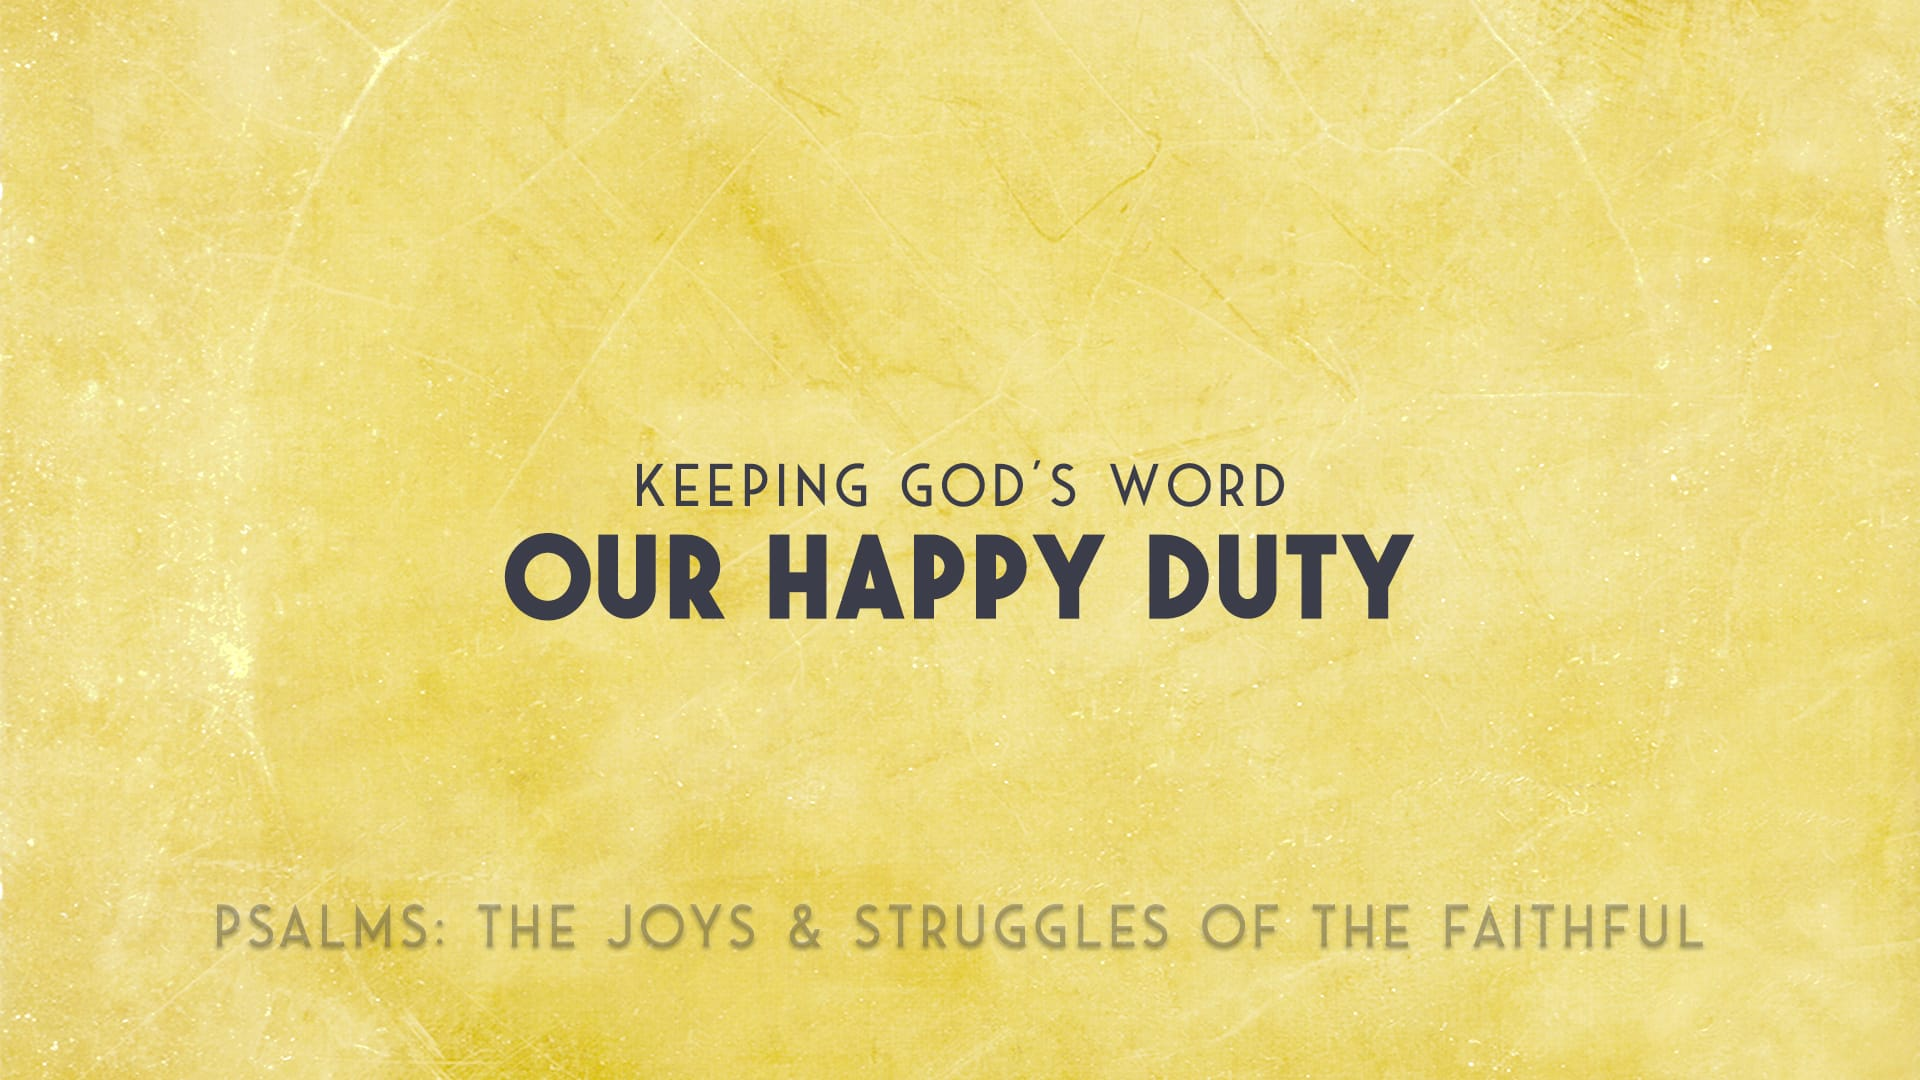 Keeping gods word our happy duty grace church of tallahassee ccuart Image collections